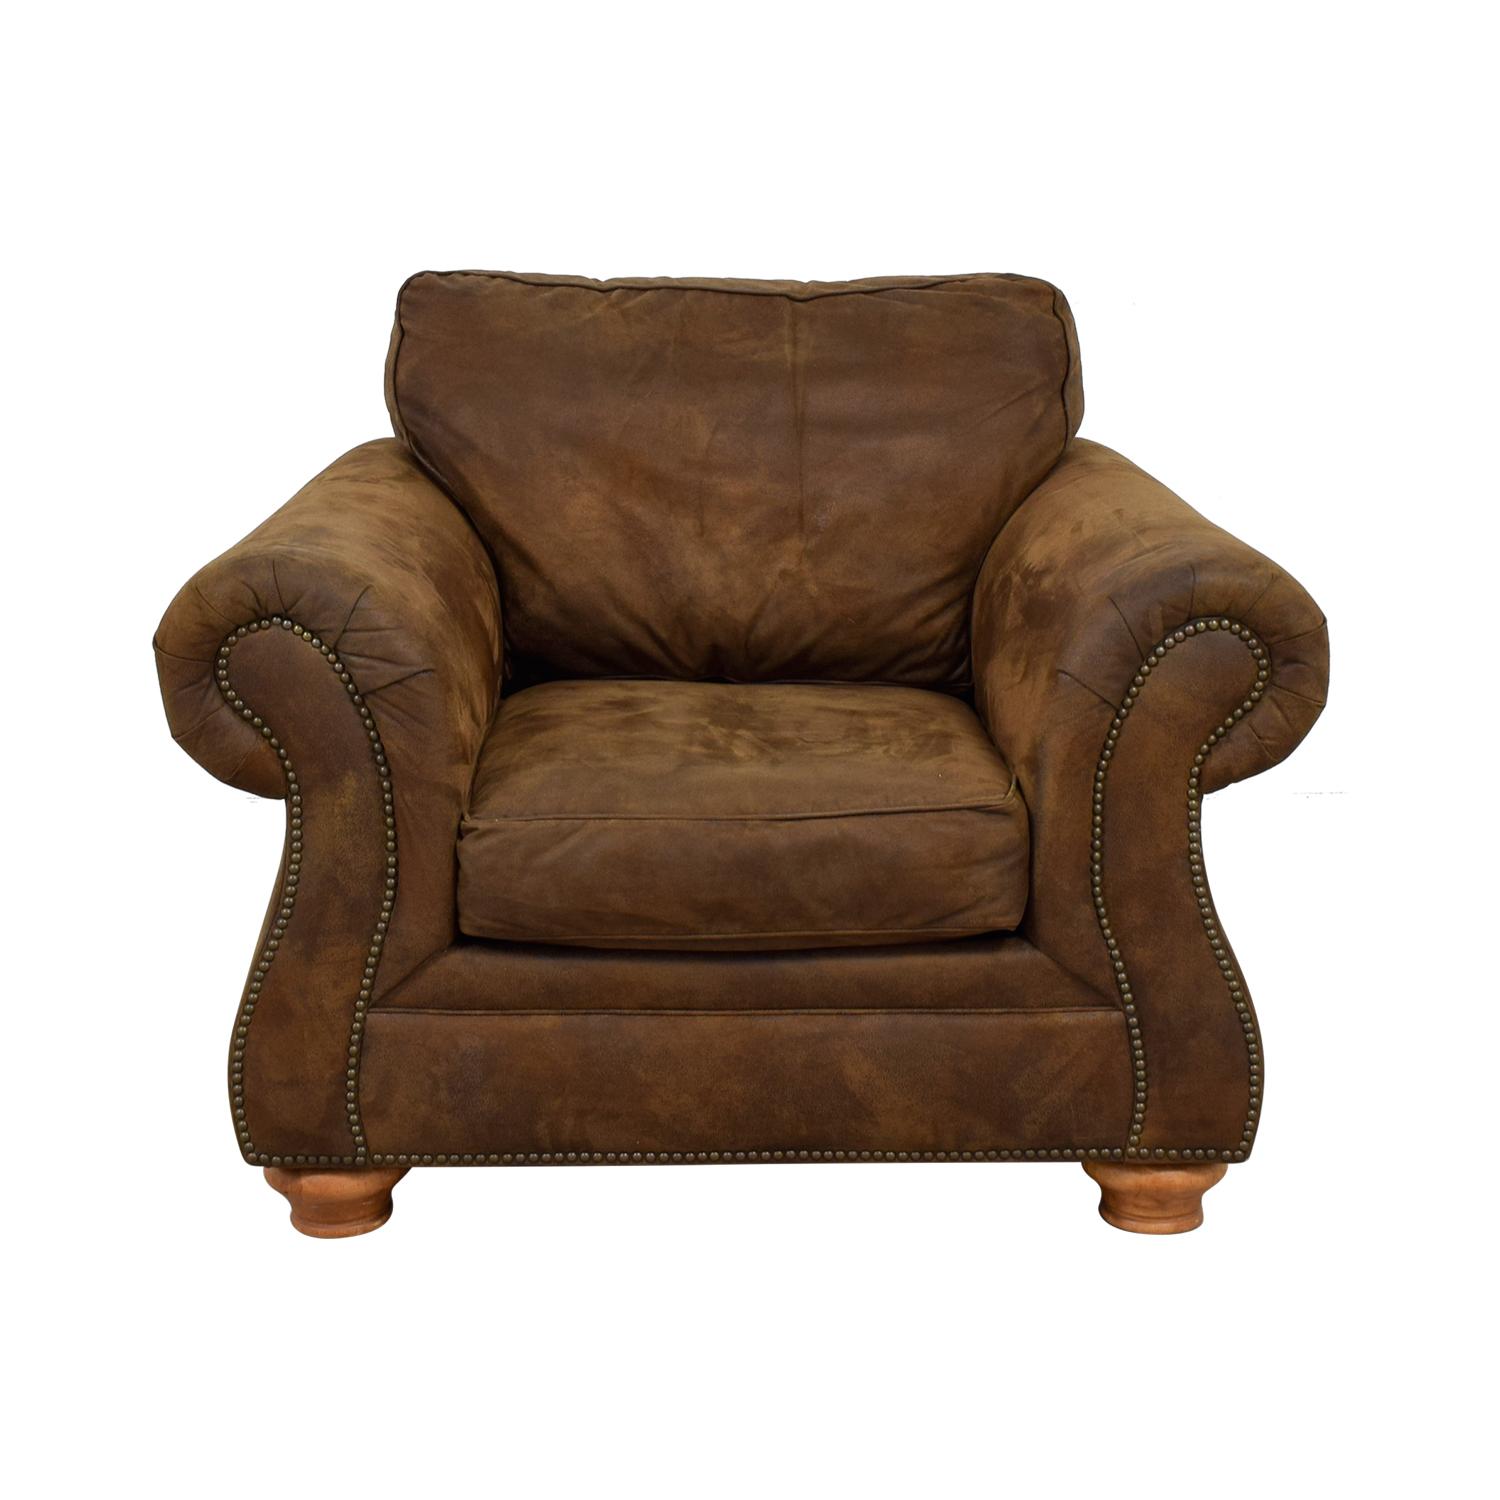 shop Raymour & Flanigan Brown Suede Lounge Chair Raymour & Flanigan Sofas